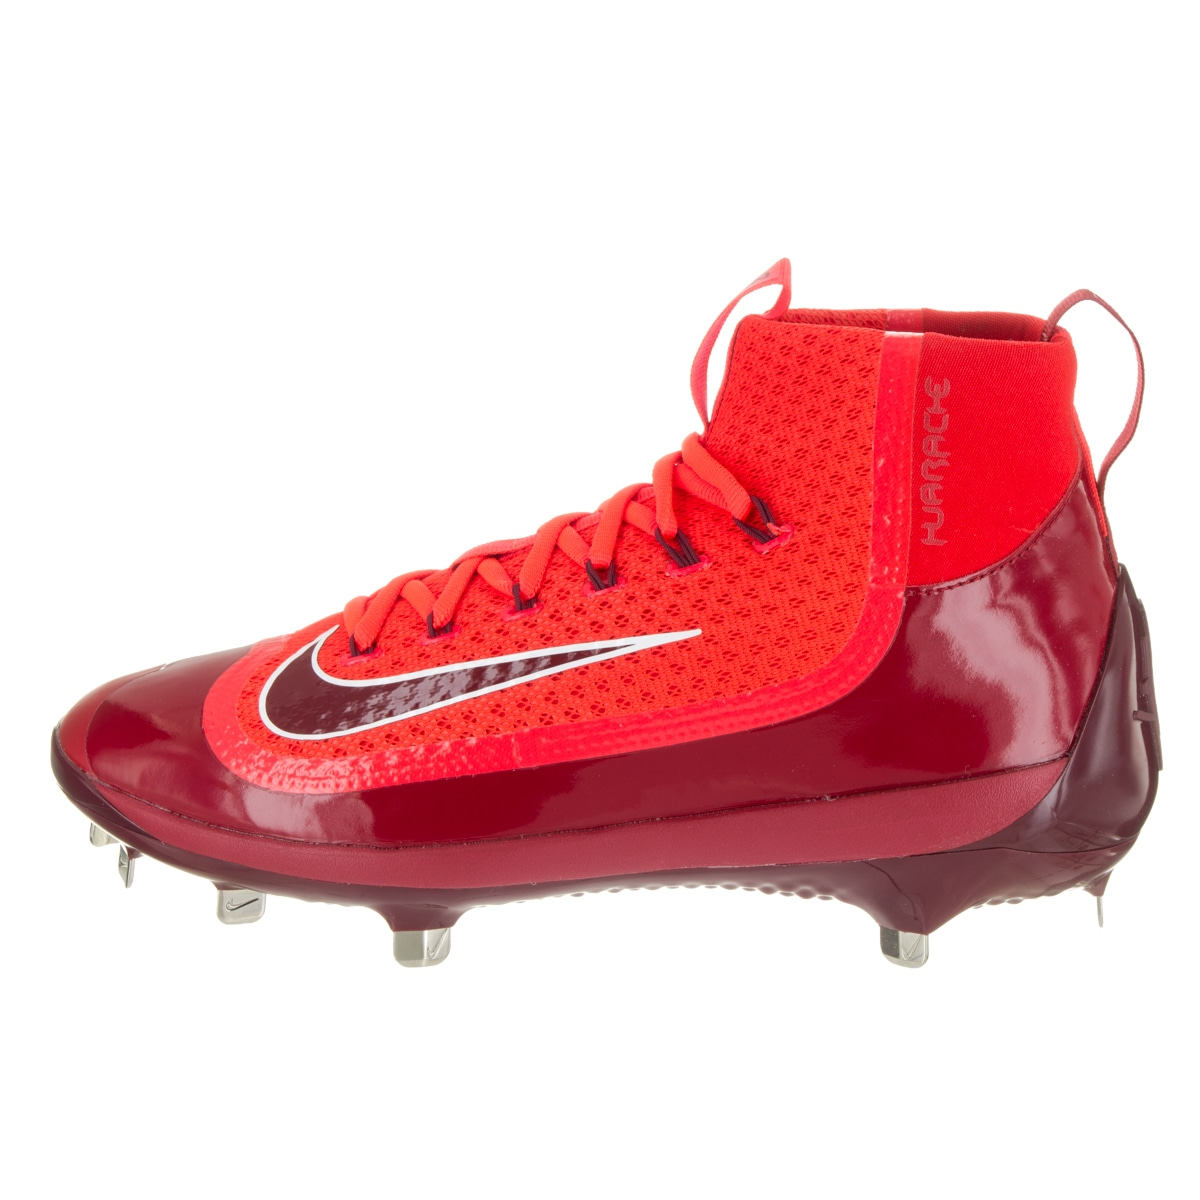 0fe915fd1160 Shop Nike Men s Air Huarache 2KFilth Elite Mid Red Baseball Cleat - Free  Shipping Today - Overstock - 13862817